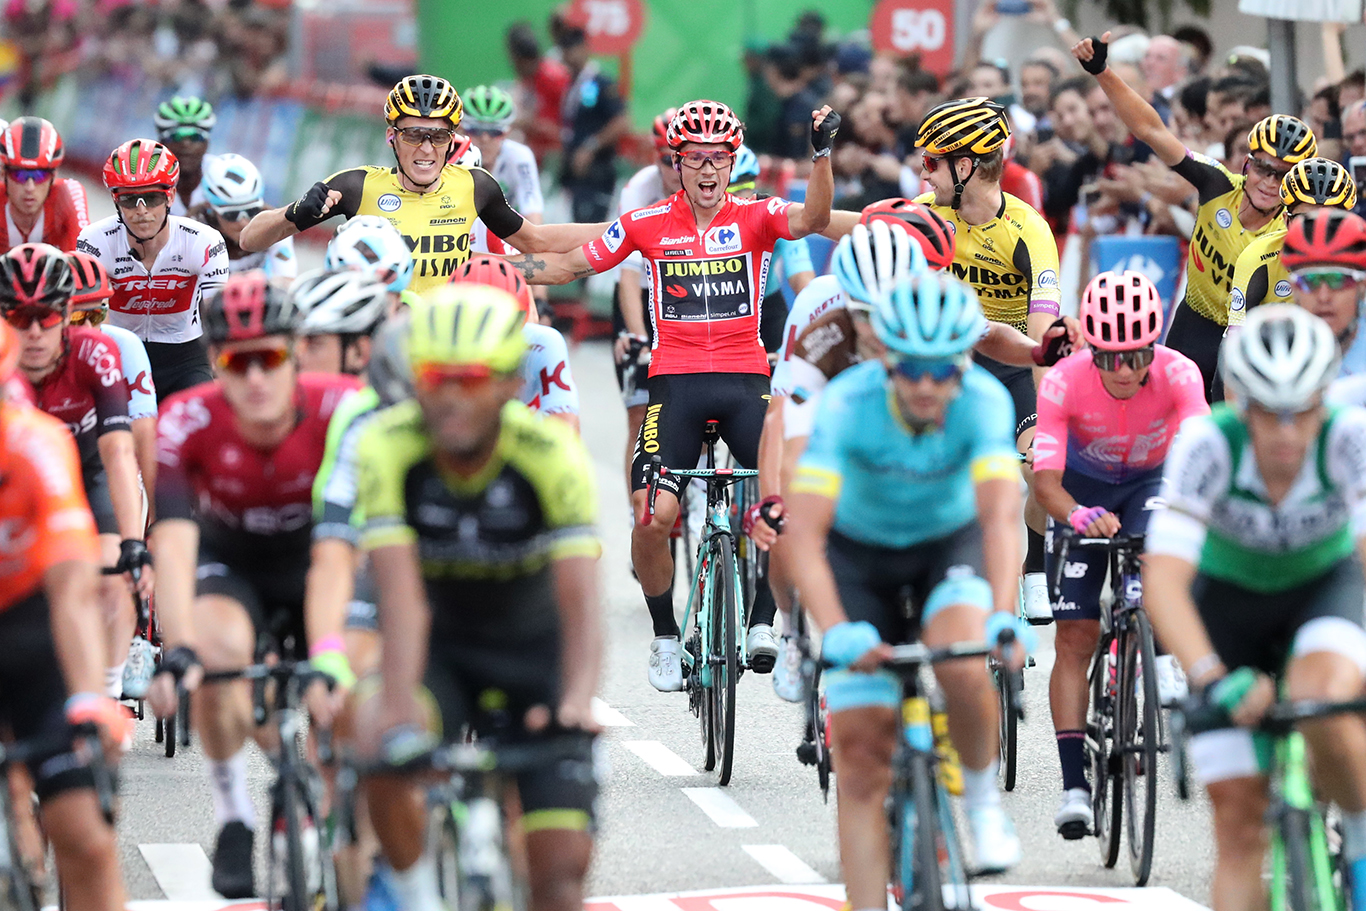 Cycling: Vuelta Espana 2019 / Tour of Spain 2019/ La Vuelta/ Etapa 21/ Stage 21/ .LLEGADA/ ARRIVAL/ SPRINT/ CELEBRACION CELEBRATION/ ROGLIC Primoz (SLO).Fuenlabrada - Madrid (106,6 km) 15-09-2019/.Vuelta Espana 2019 / La Vuelta/ Tour of Spain 2019/.Luis Angel Gomez .©PHOTOGOMEZSPORT2019